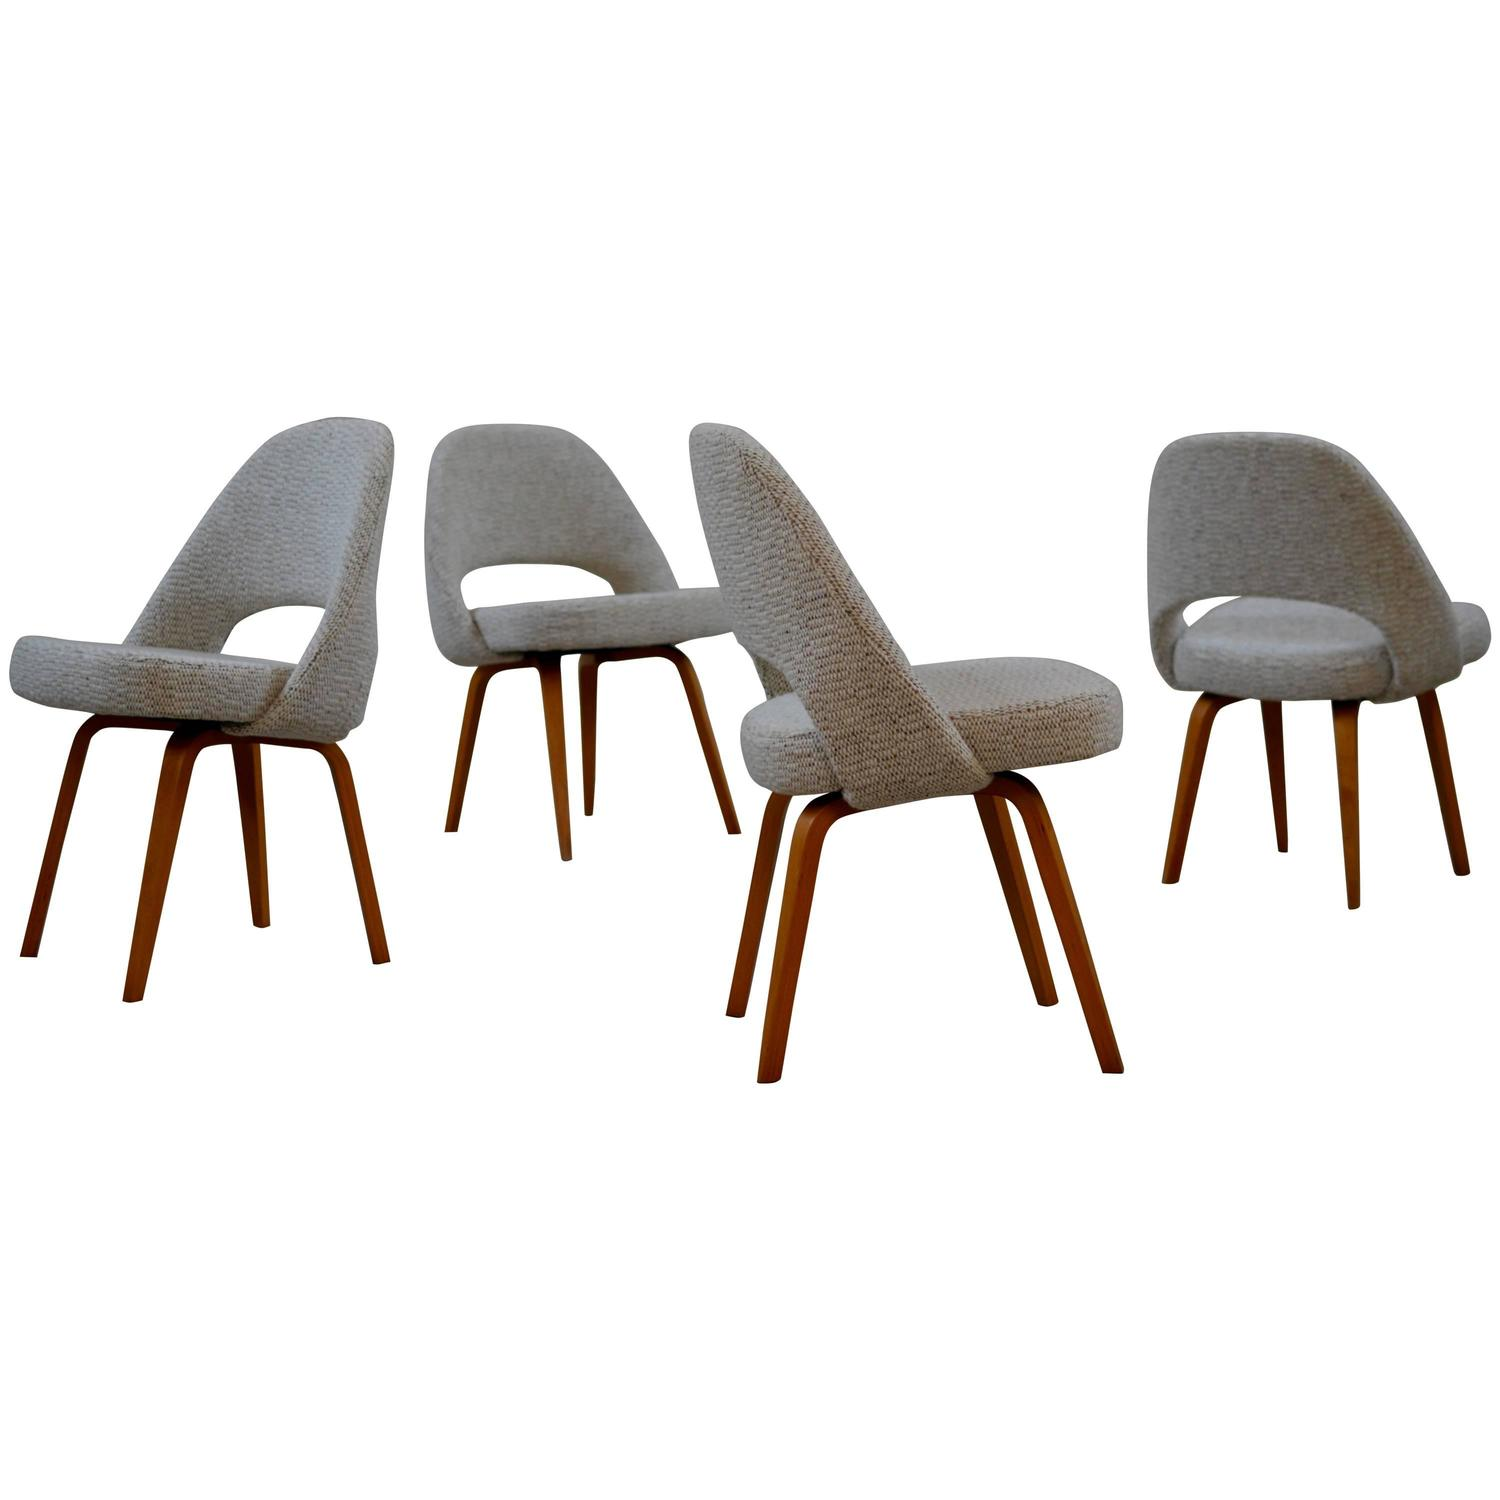 early saarinen executive chairs with wooden legs at stdibs -